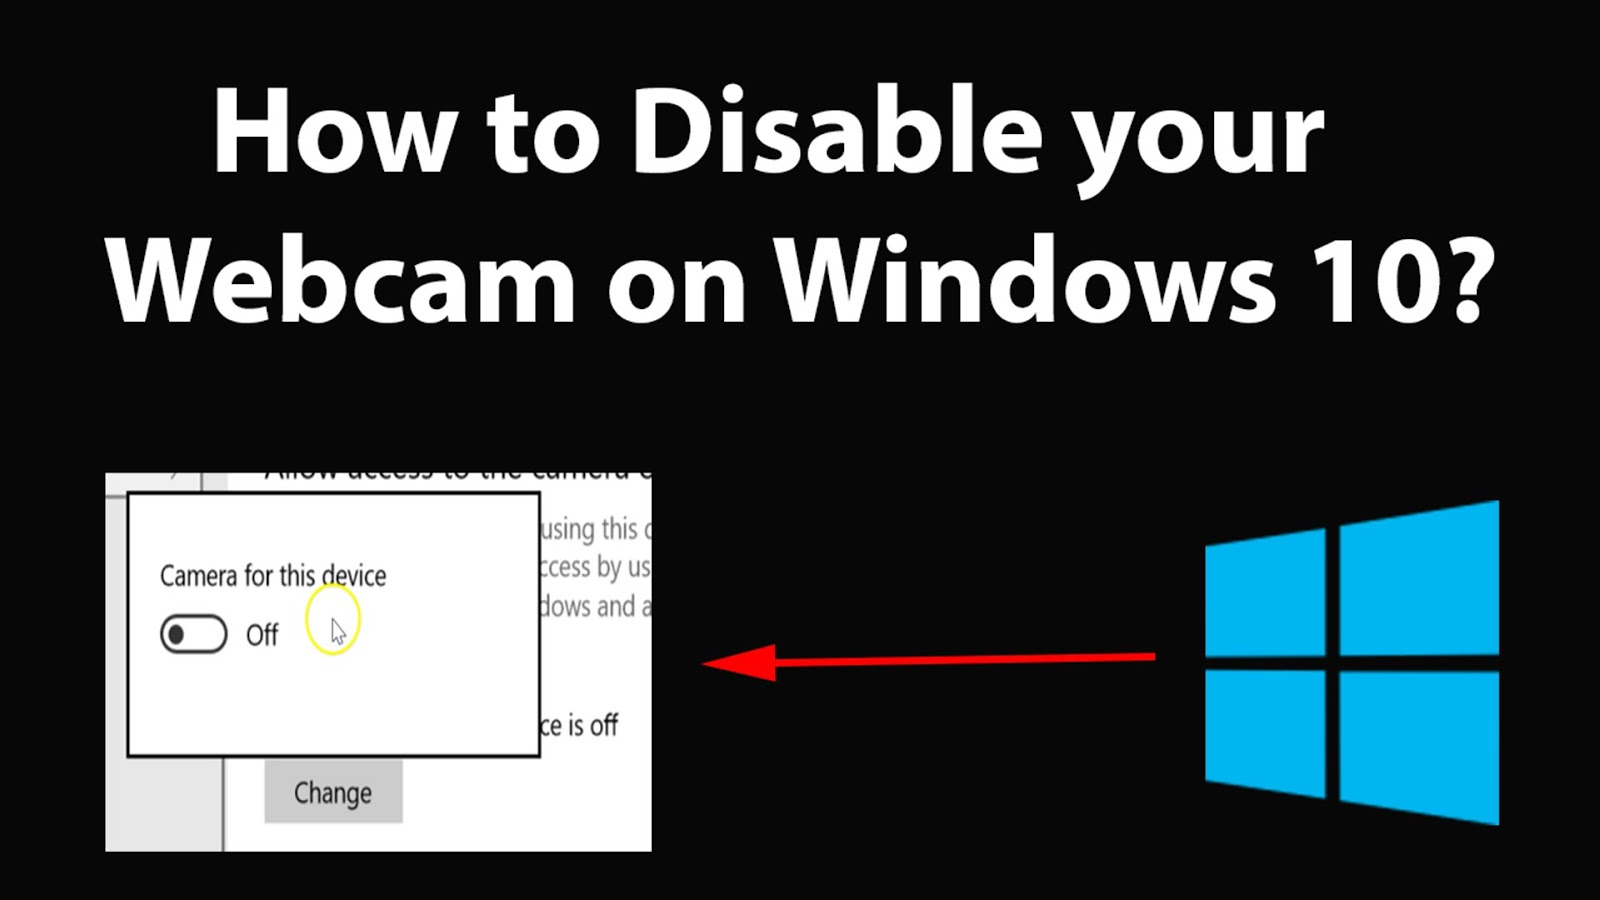 How to Disable the Webcam in Windows 10 - Windows Basics